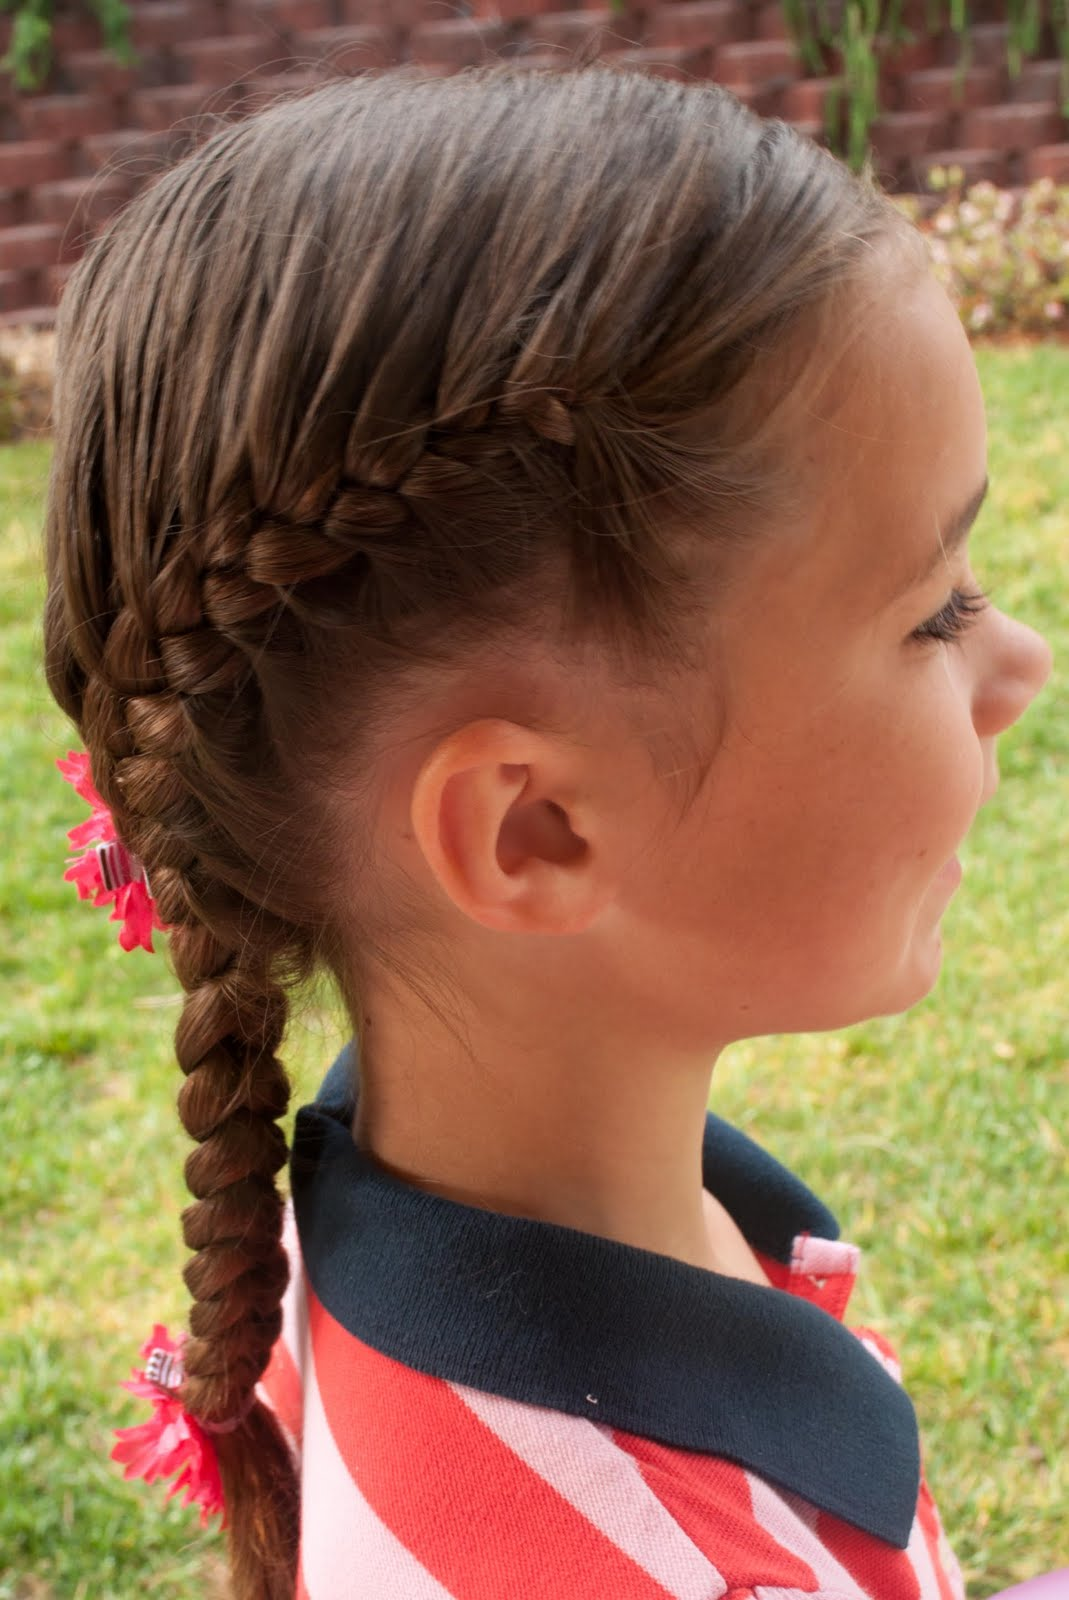 braids for kids styles girls - photo #46